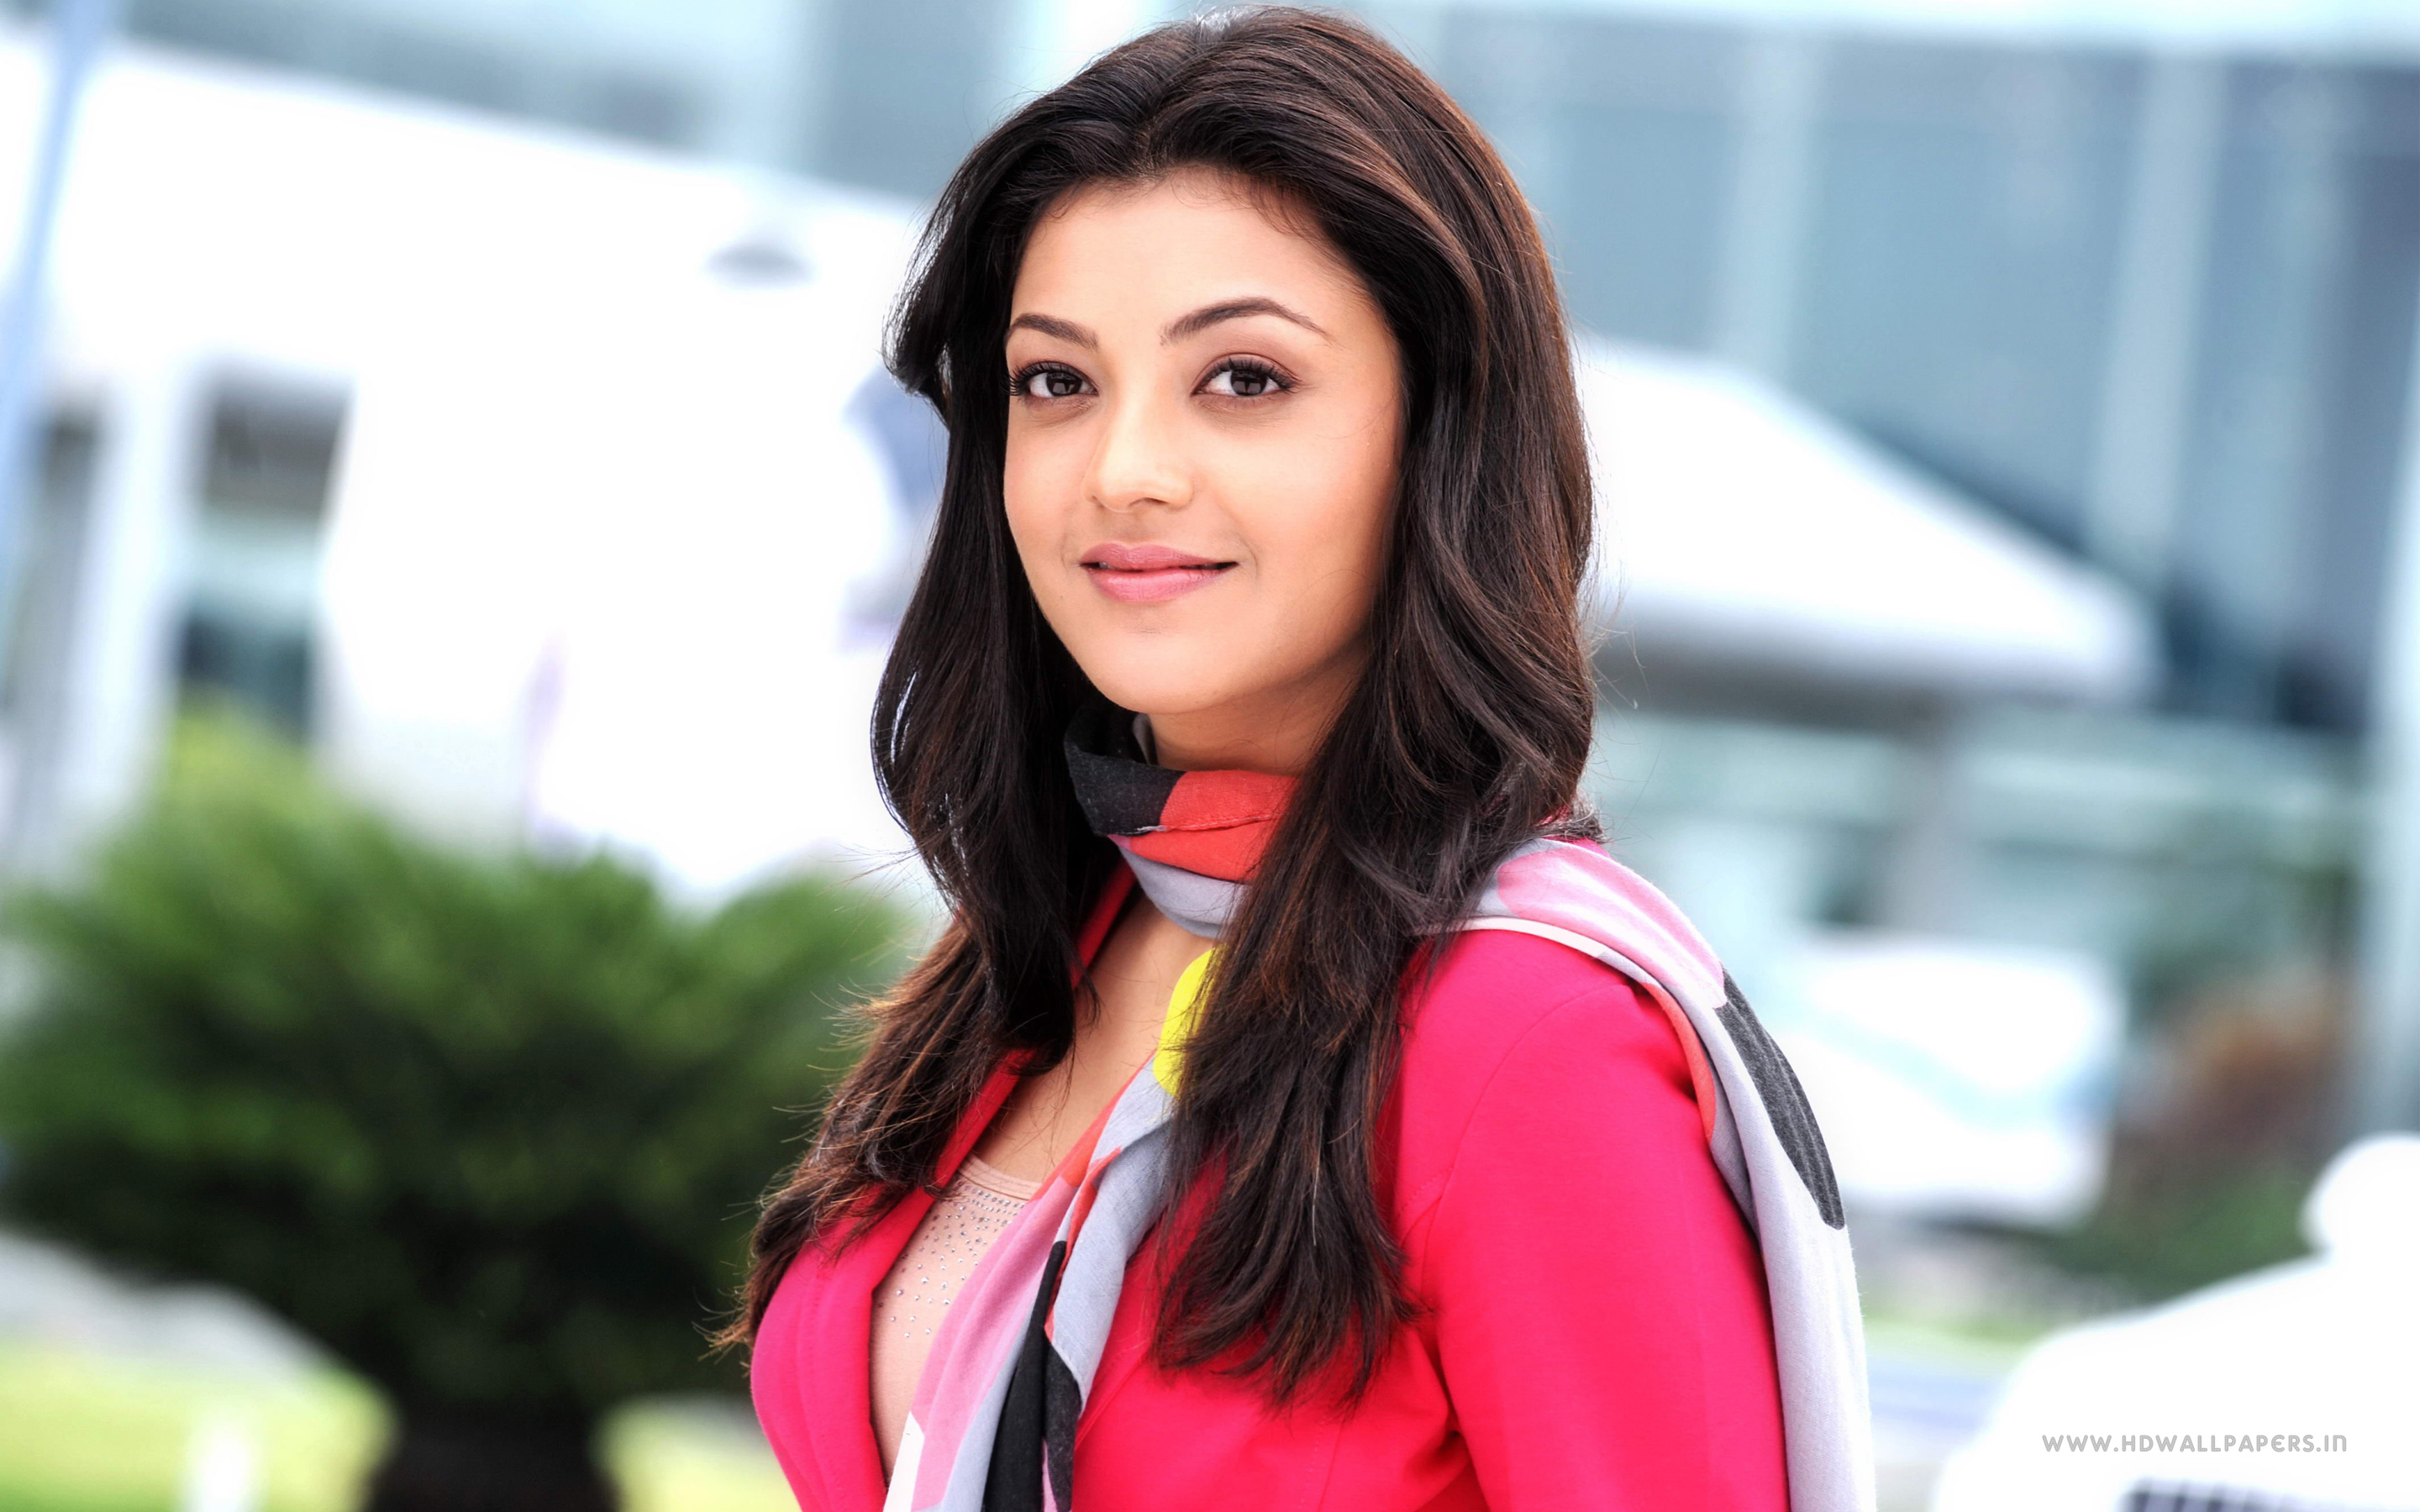 kajal aggarwal full hd wallpaper and background image | 2880x1800